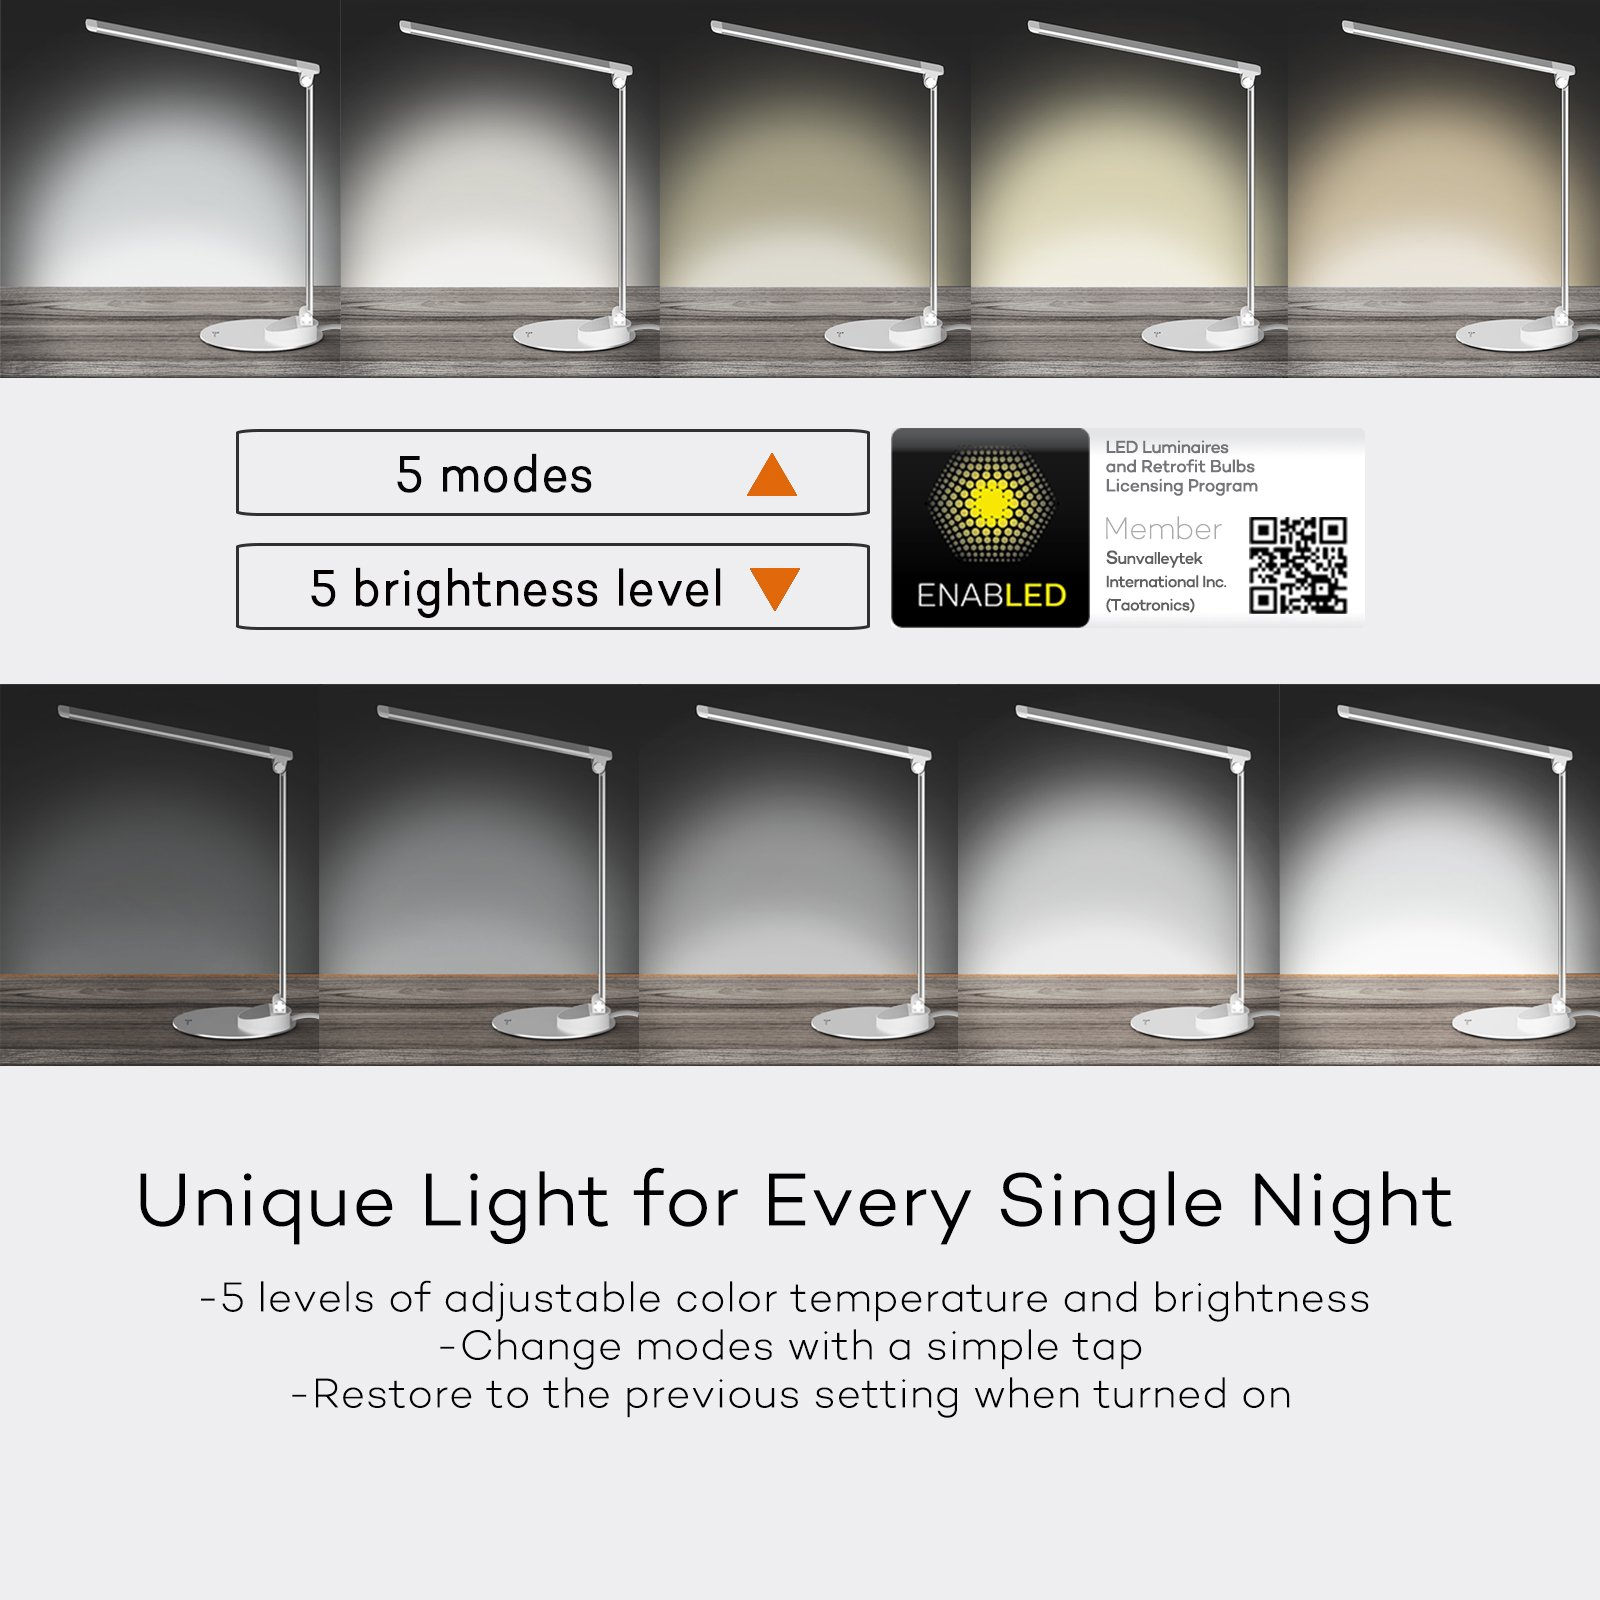 TaoTronics LED Desk Lamp with USB Charging Port, Eye- care Dimmable Lamp, 5 Color Temperatures with 5 Brightness Levels, Touch Control, Metal, Official Member of Philips EnabLED Licensing Program by TaoTronics (Image #3)